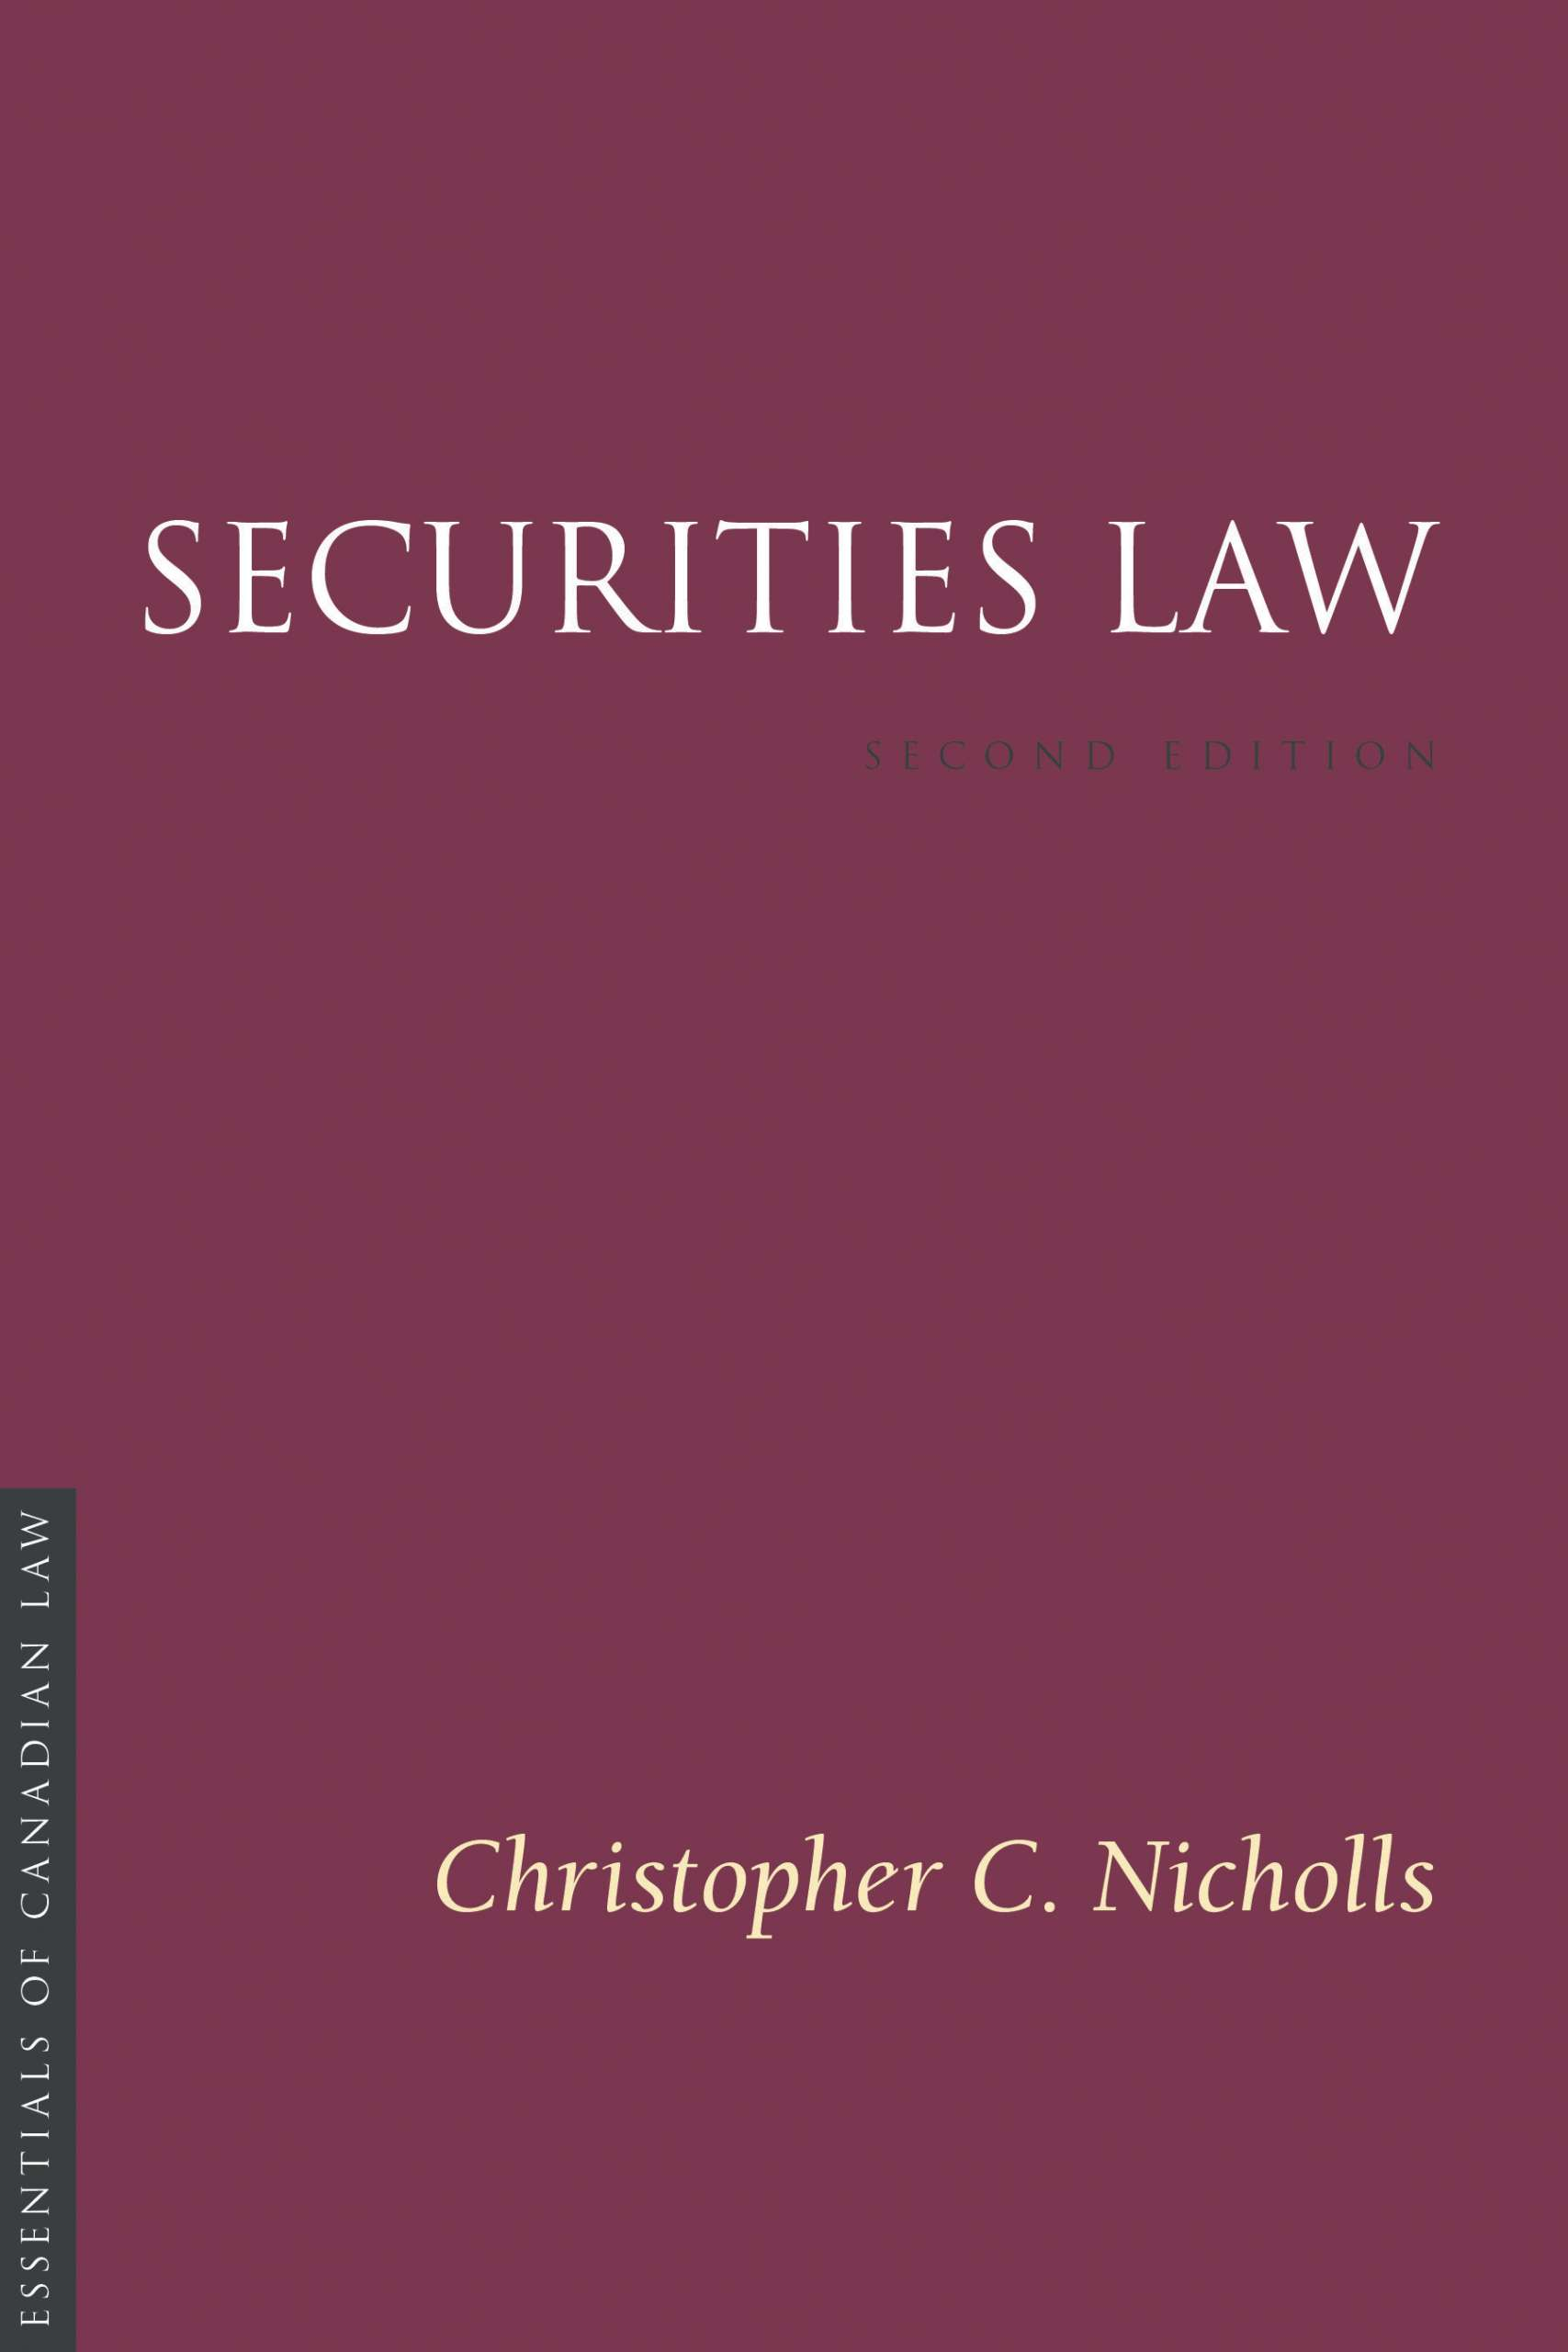 Book cover for Securities Law by Christopher C. Nicholls. As a book in the Essentials of Canadian Law series, the cover is a solid burgundy colour with a simple type treatment in capital serif letters in white.